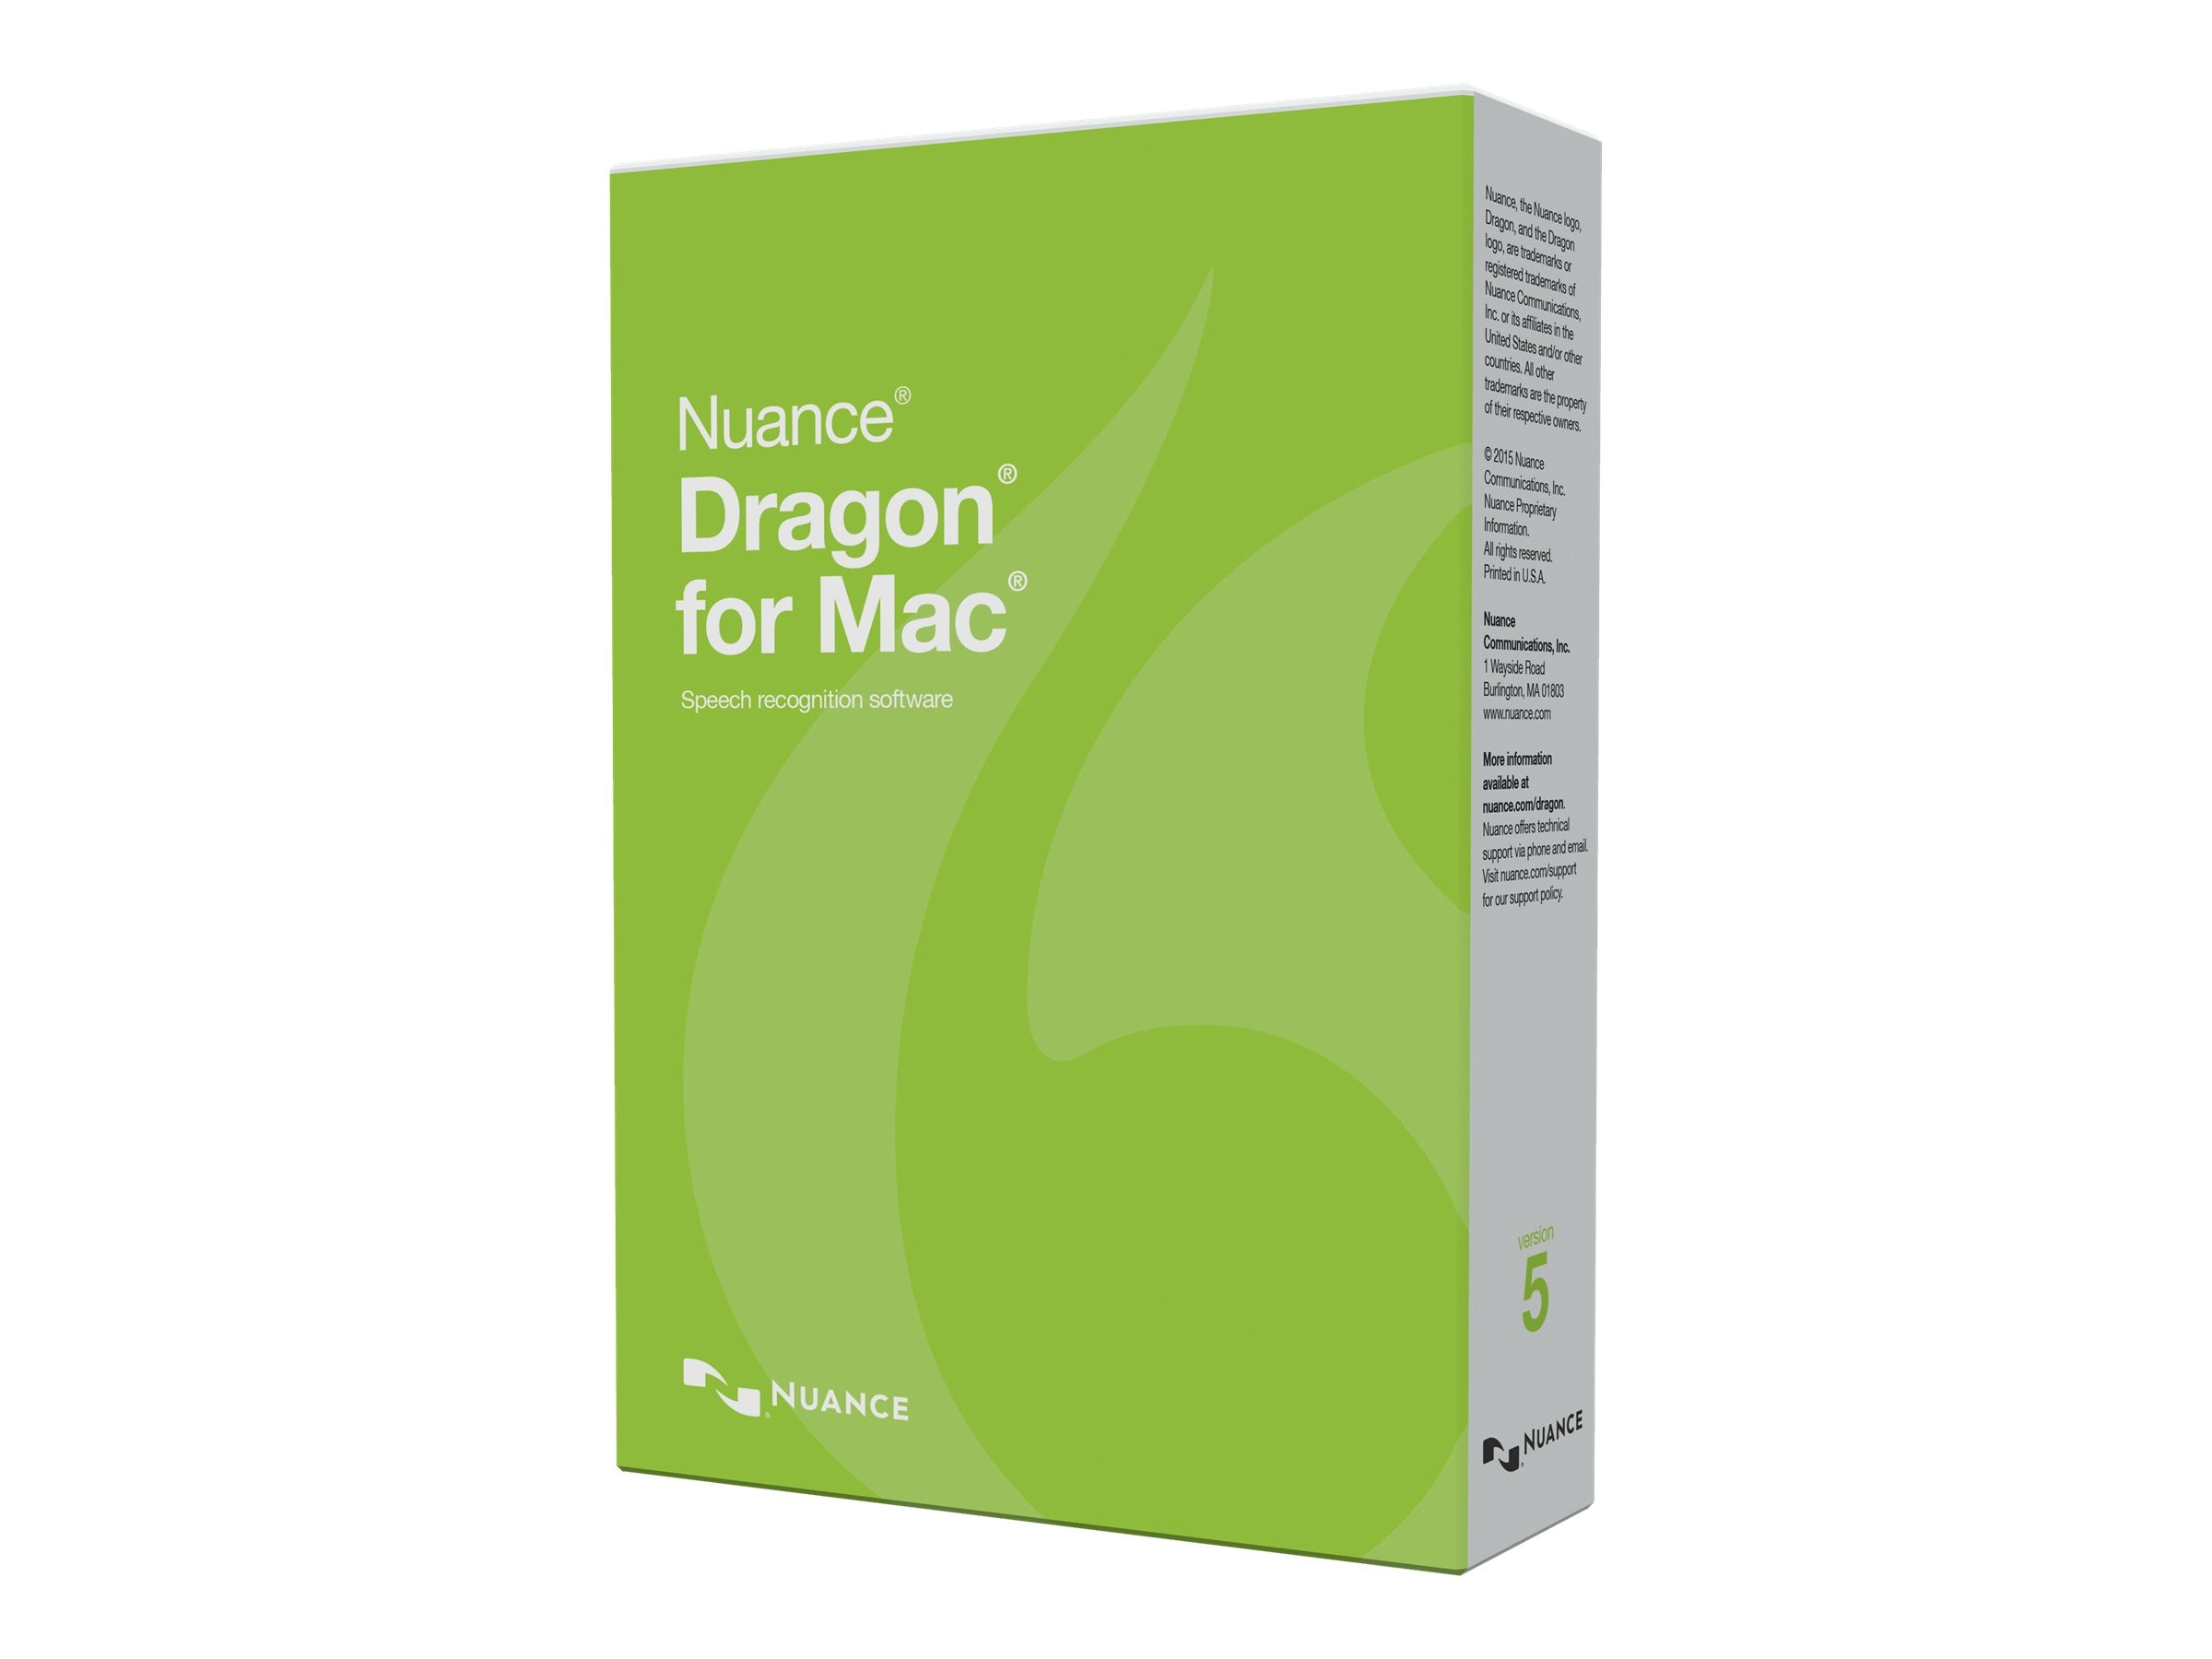 Nuance Dragon for Mac 5.0 DVD w Bluetooth Headset